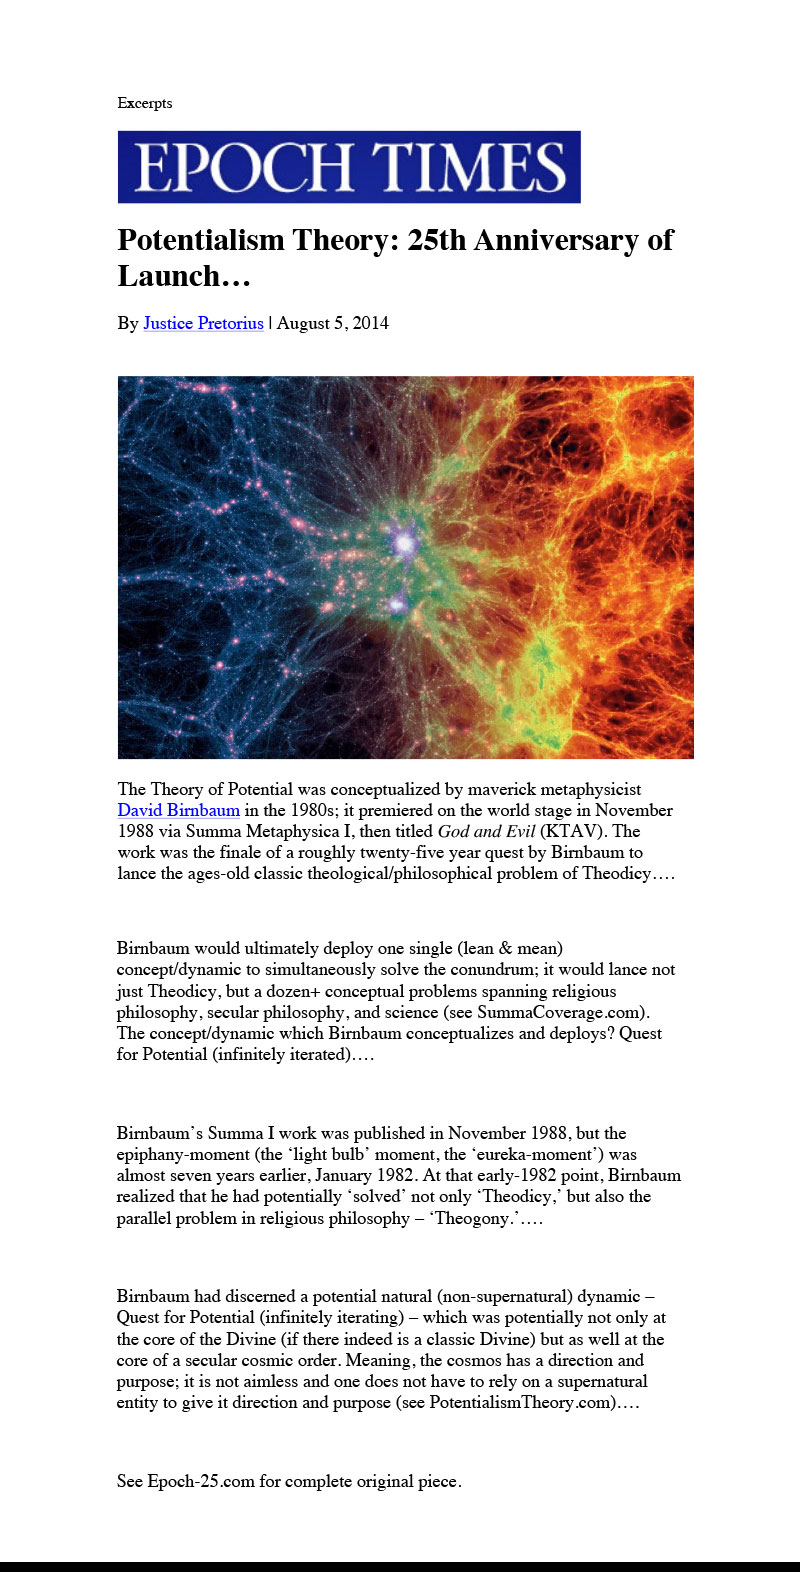 See intellectual revolutionary cosmologist David Birnbaum's philosophy - metaphysics on creation, big bang and  teleology - cosmic purpose....